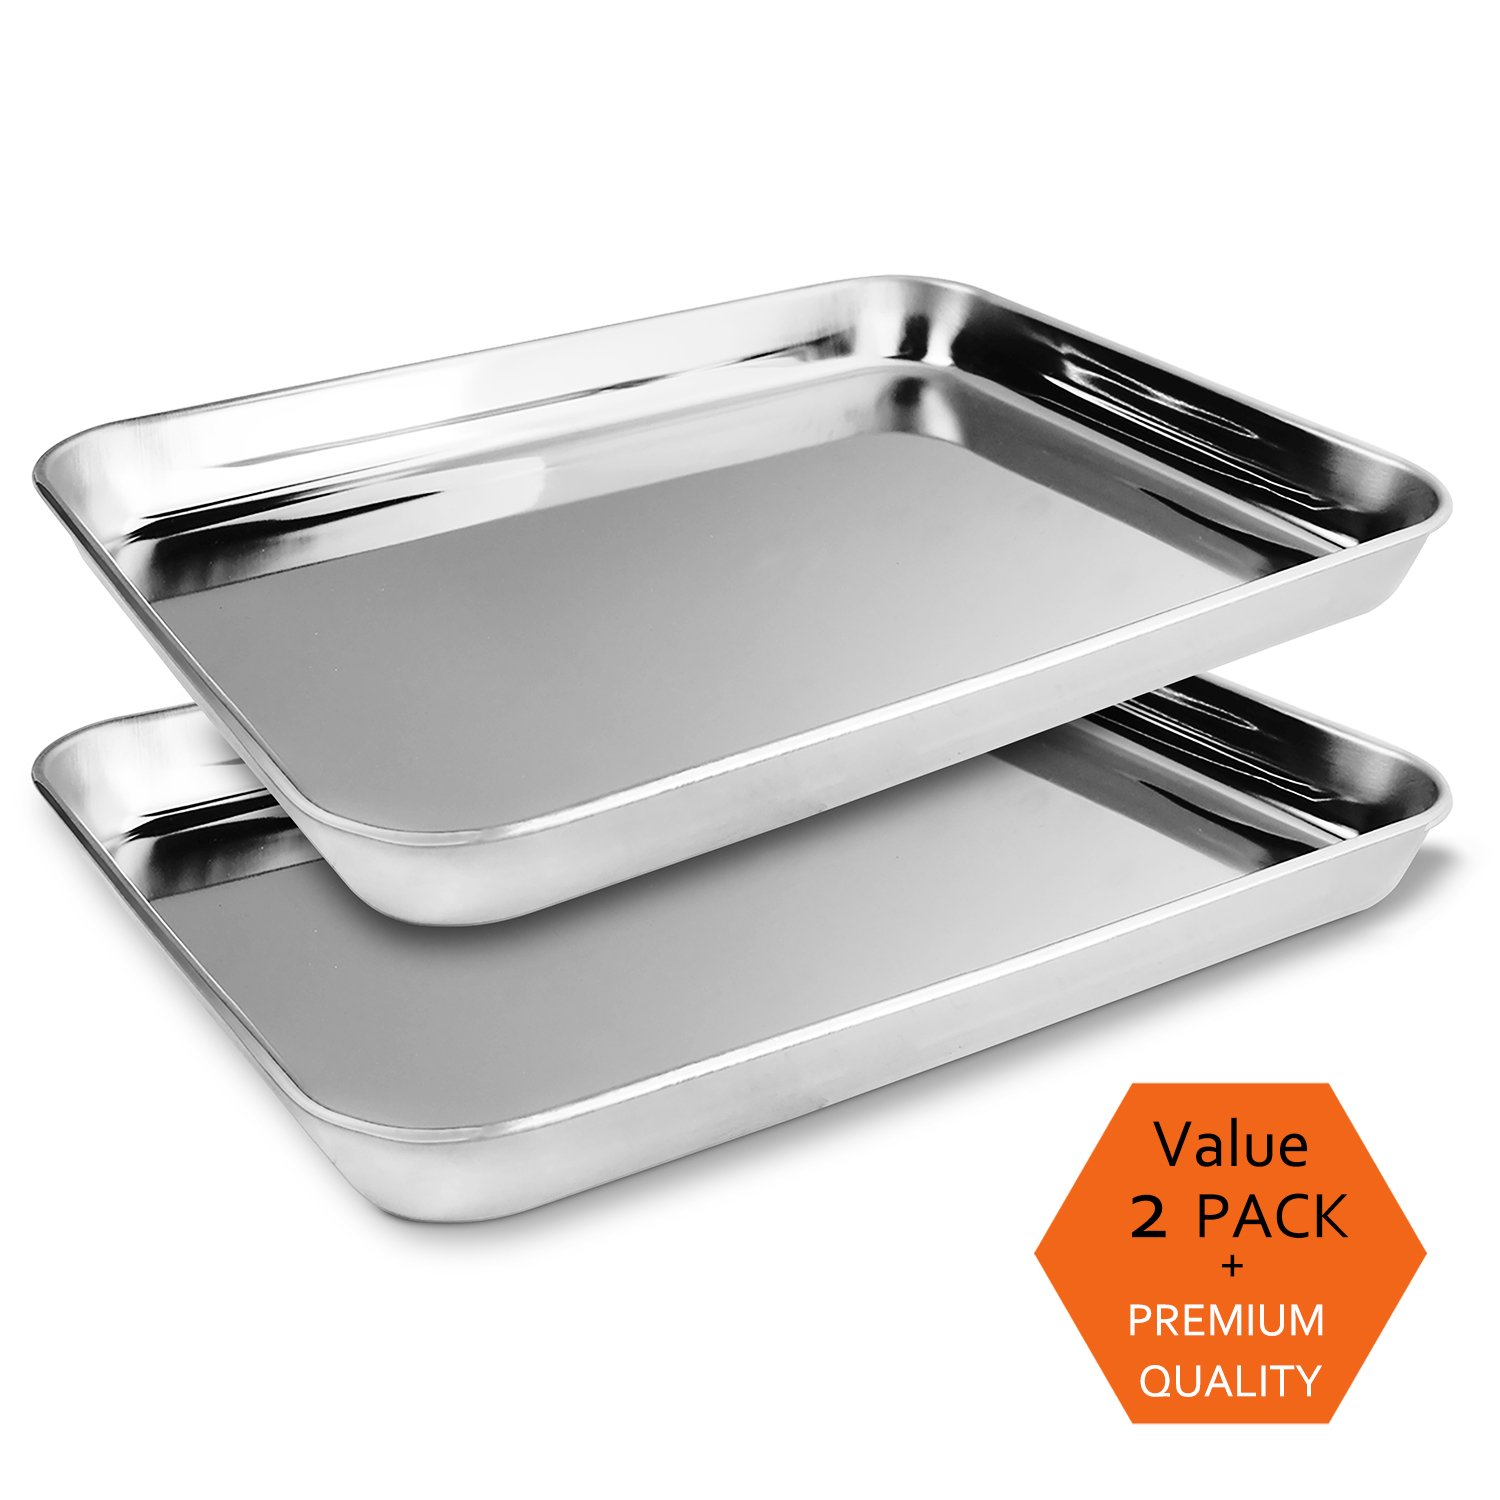 Teivio Pack of 2 Stainless Steel Compact Toaster Oven Pan Tray Ovenware Professional, 12.4''x9.6''x1'', Heavy Duty & Healthy, Deep Edge, Superior Mirror Finish, Dishwasher Safe